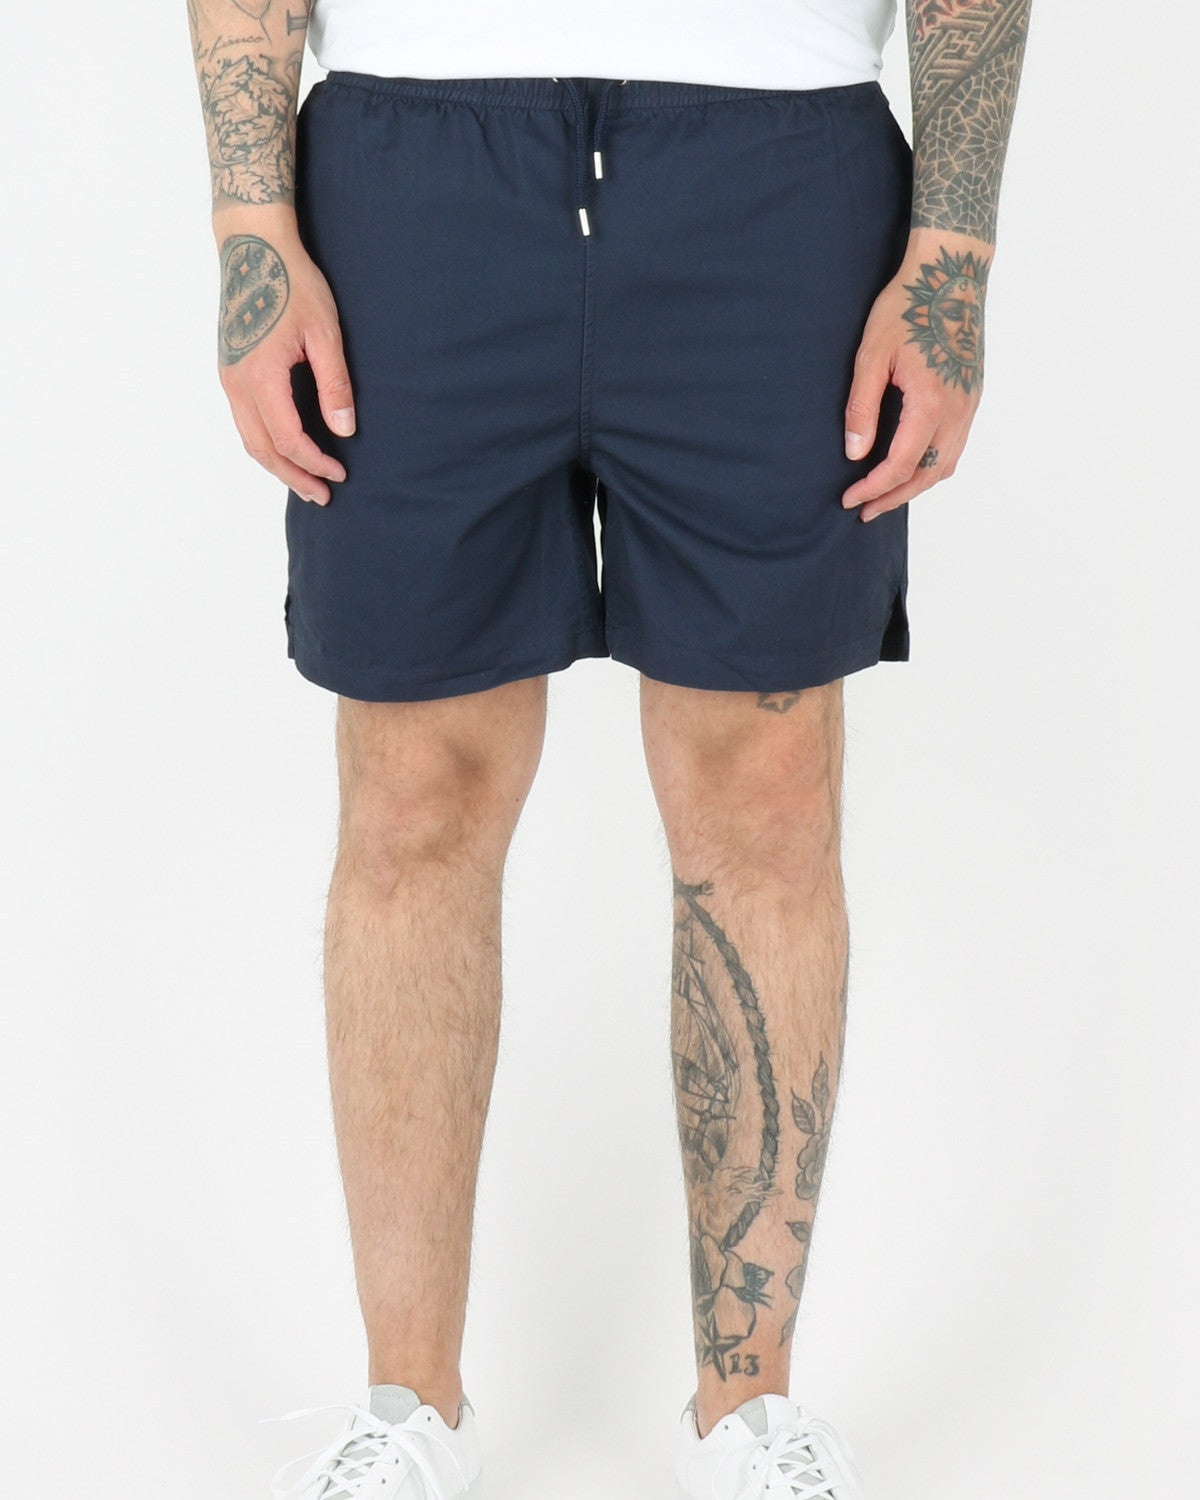 wac we are copenhagen_rivaldo shorts_navy_view_1_2